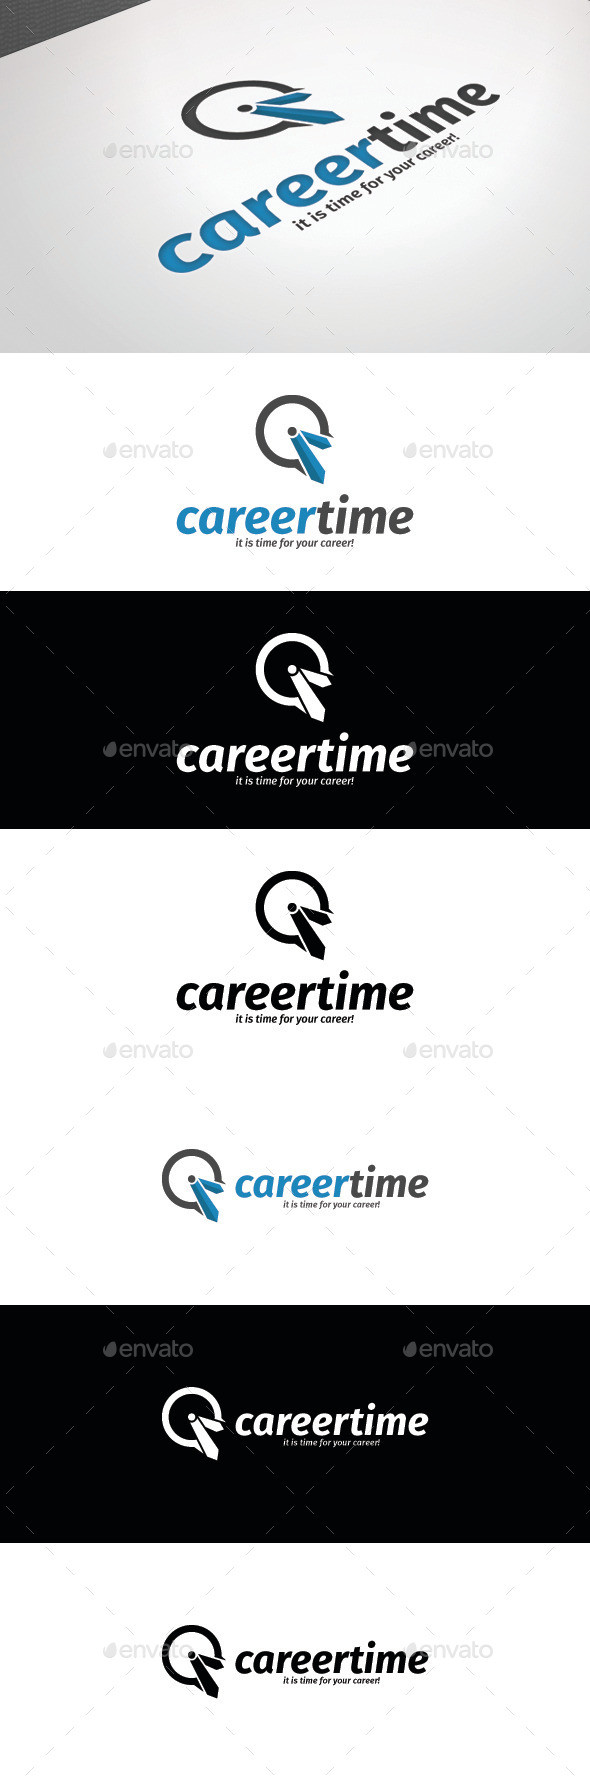 Career 20time 20logo 20template 20preview